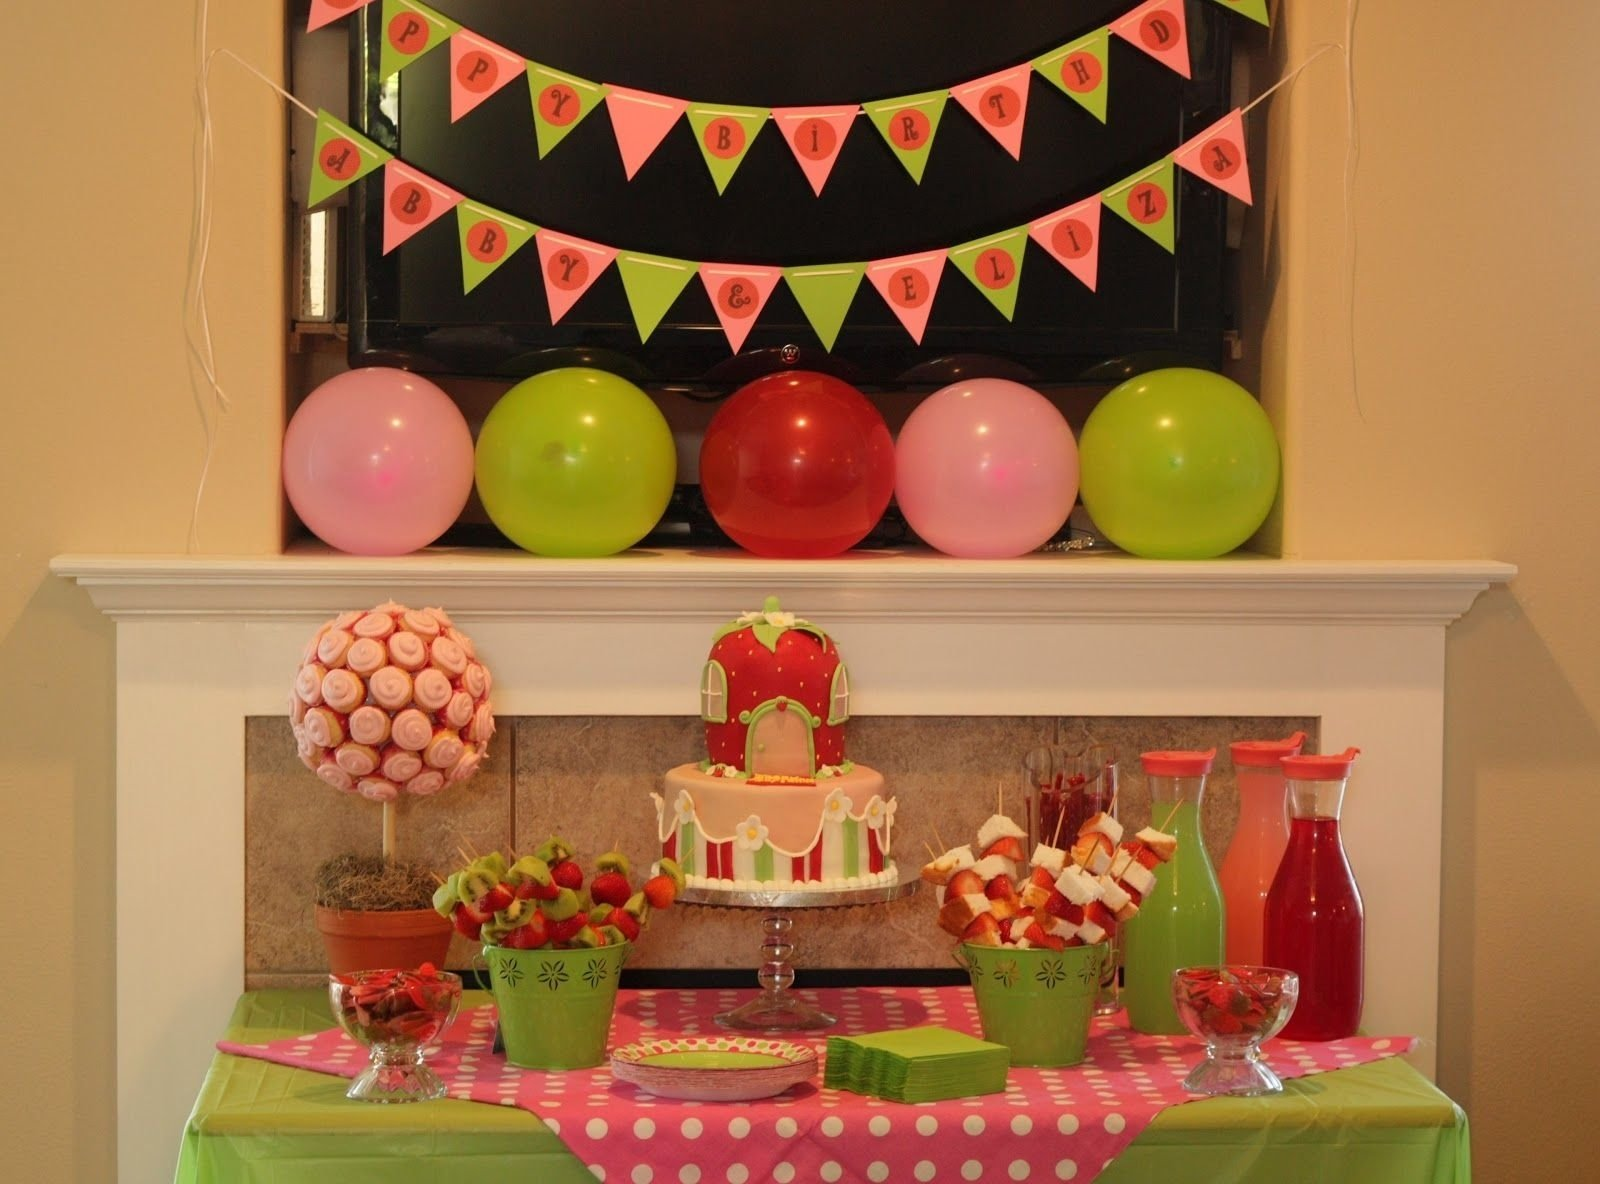 10 Attractive Strawberry Shortcake Birthday Party Ideas patty cakes bakery strawberry shortcake birthday party party 2021